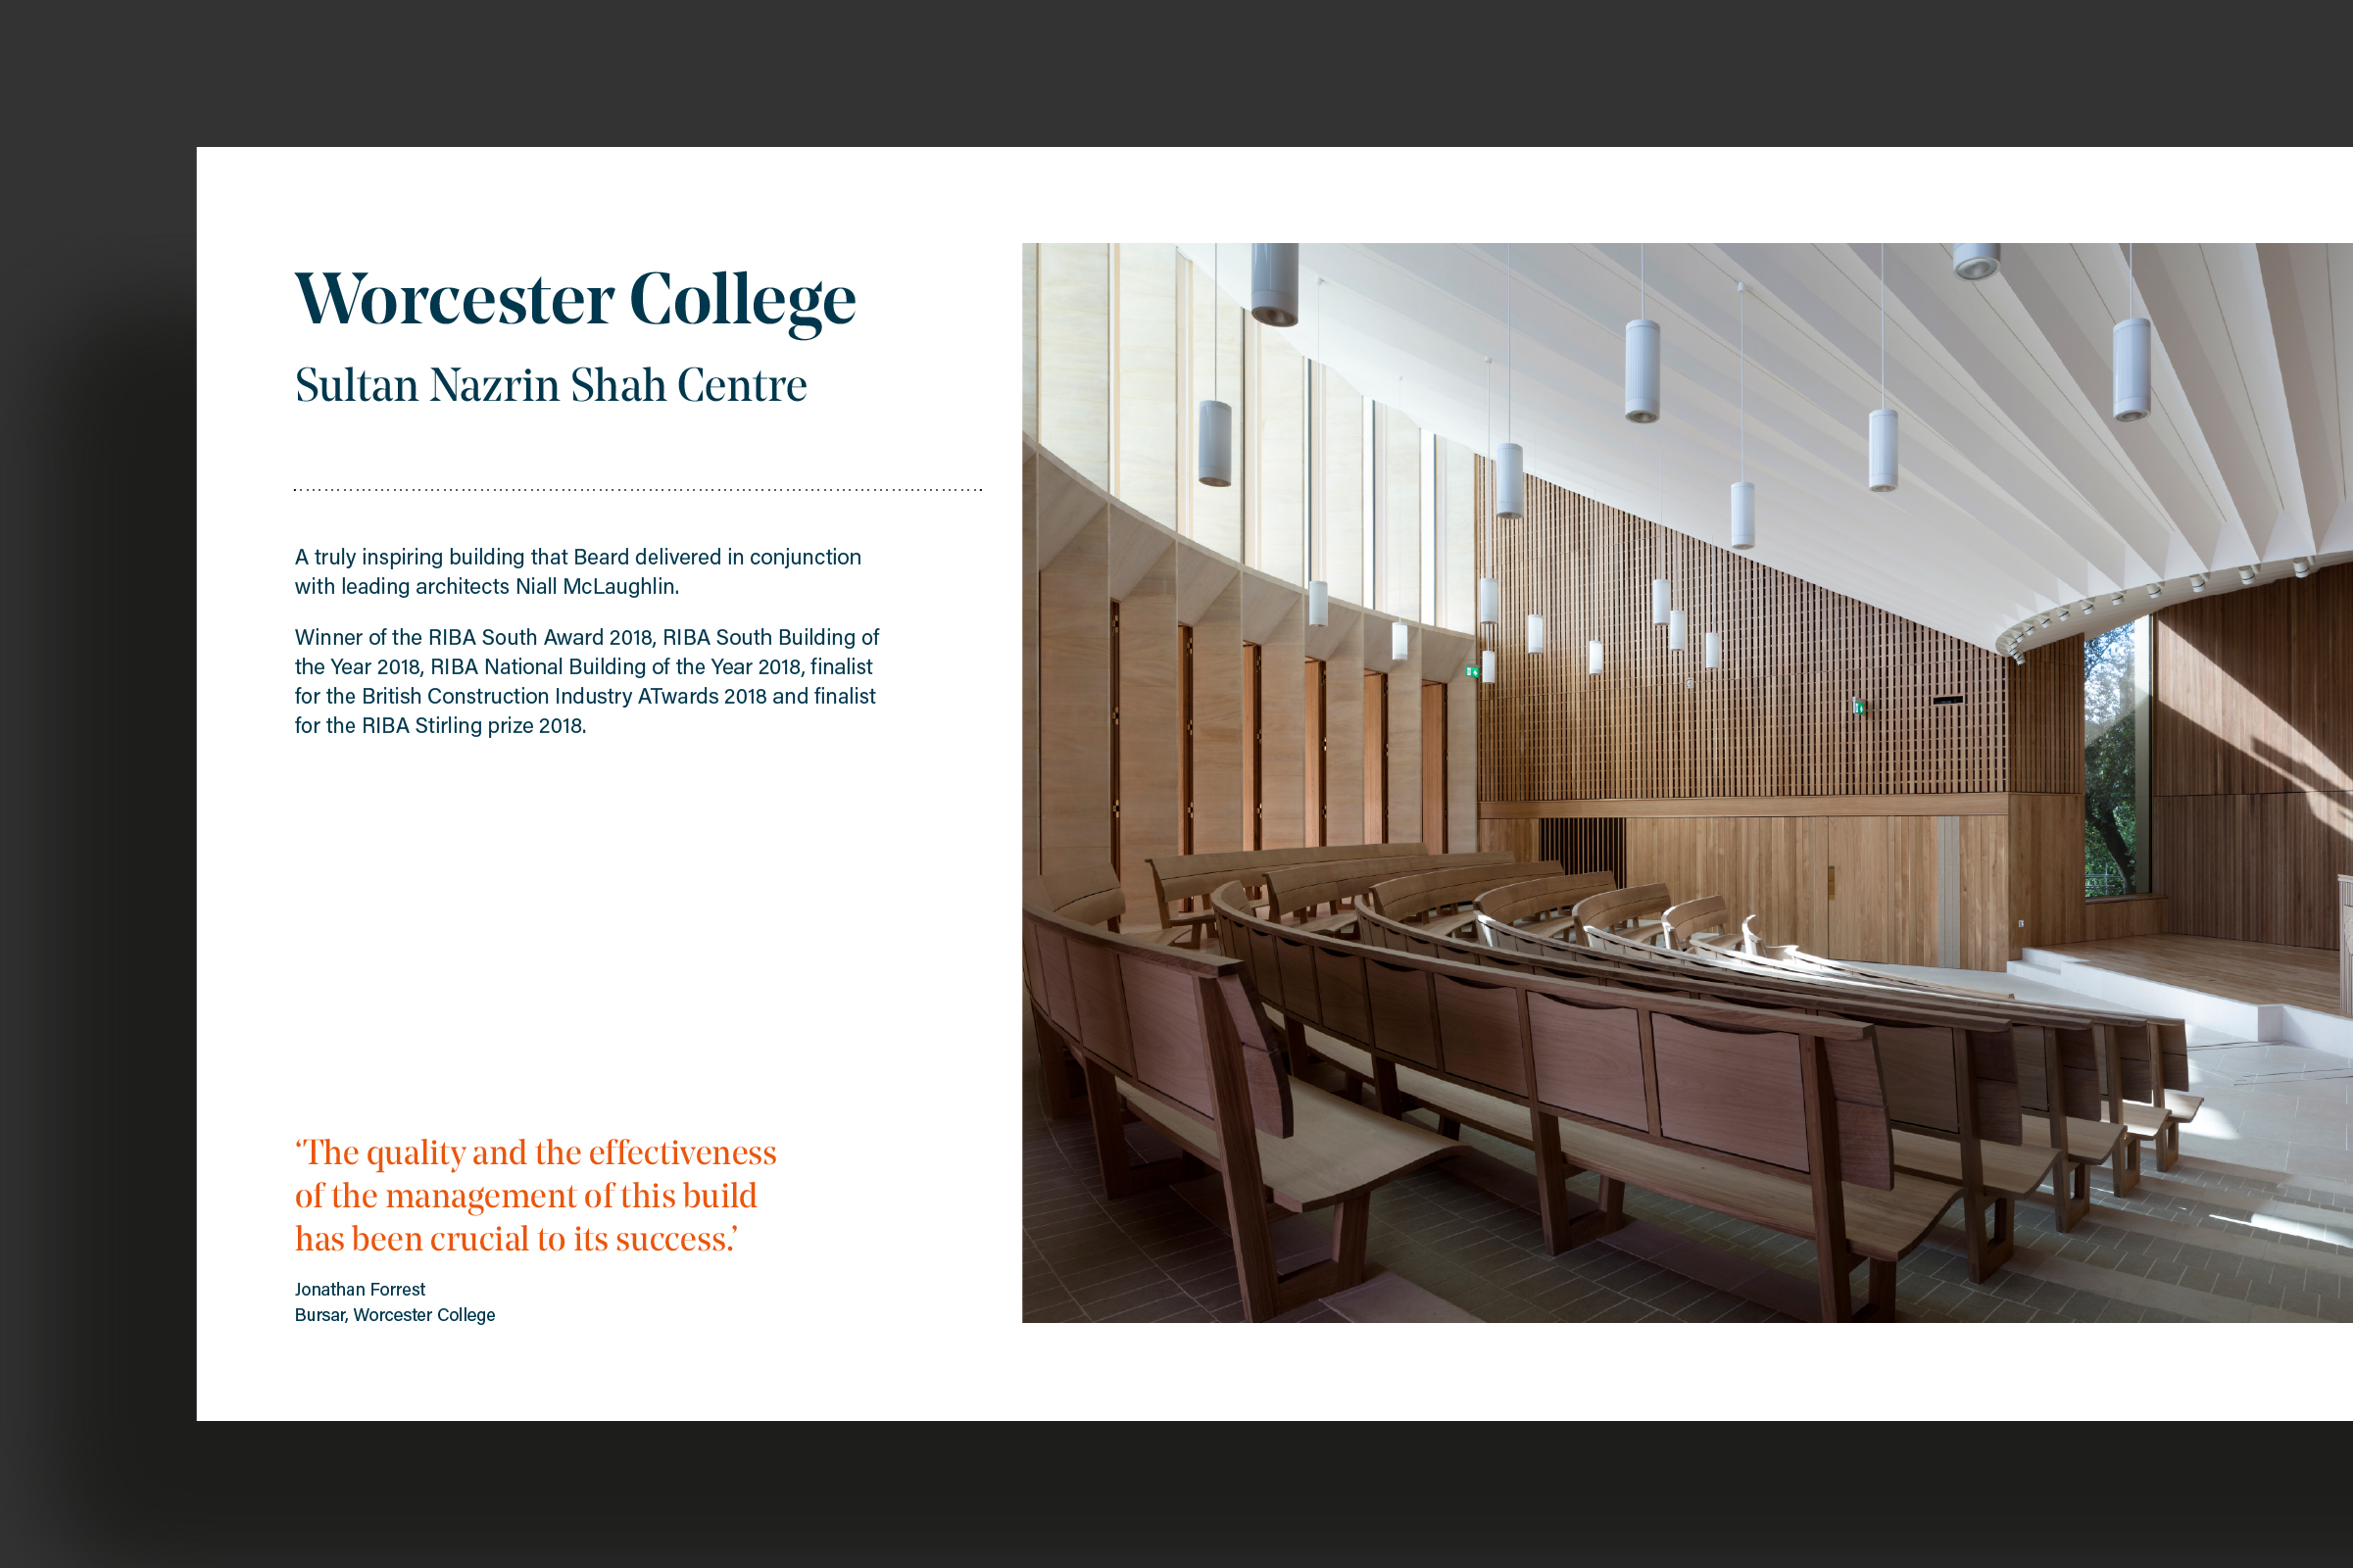 Brochure design showing an Oxford lecture theatre